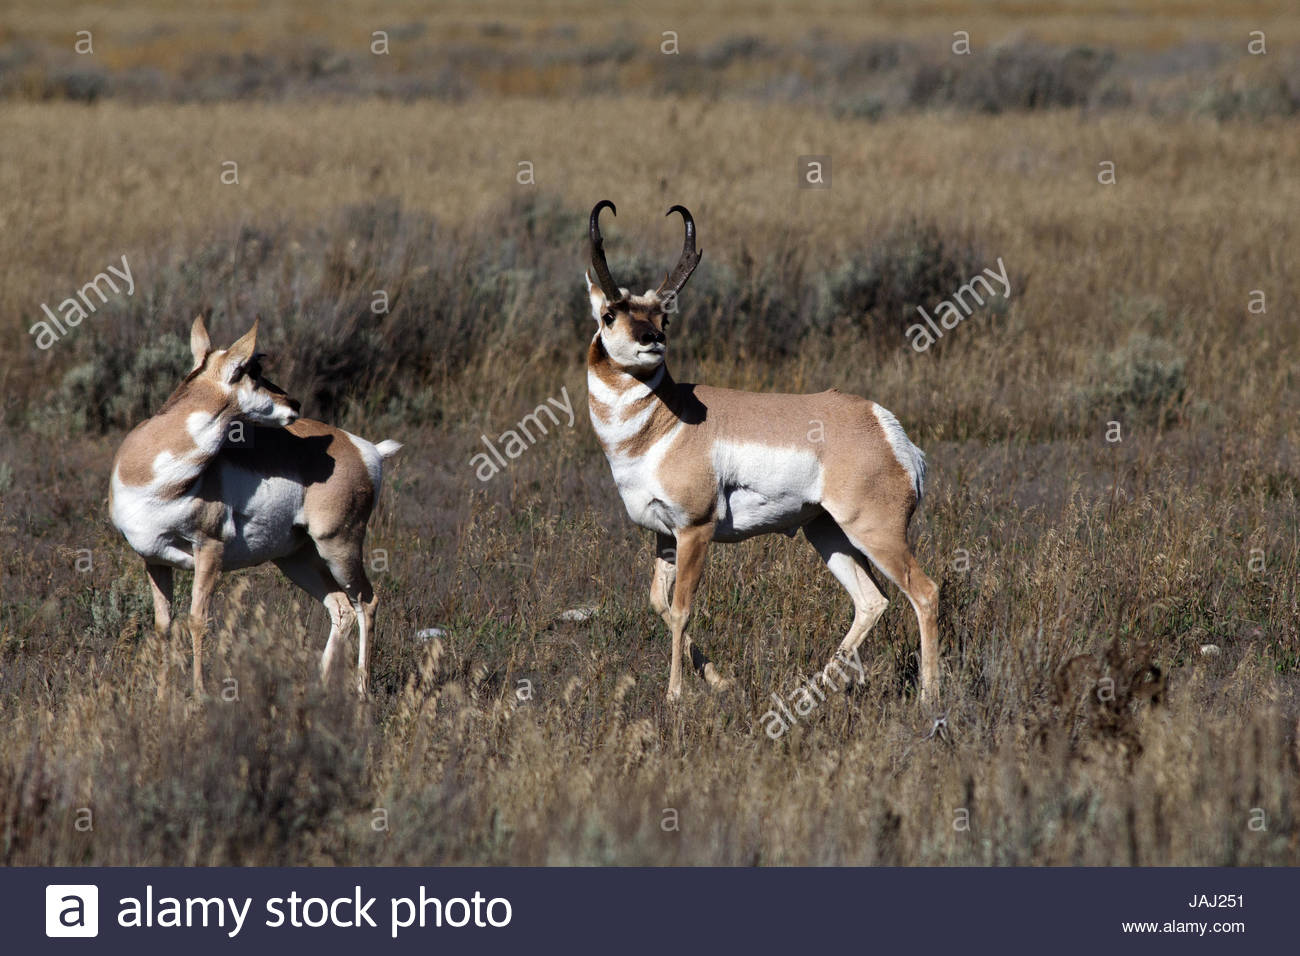 A pronghorn courtship display in a grass and scrub landscape. - Stock Image